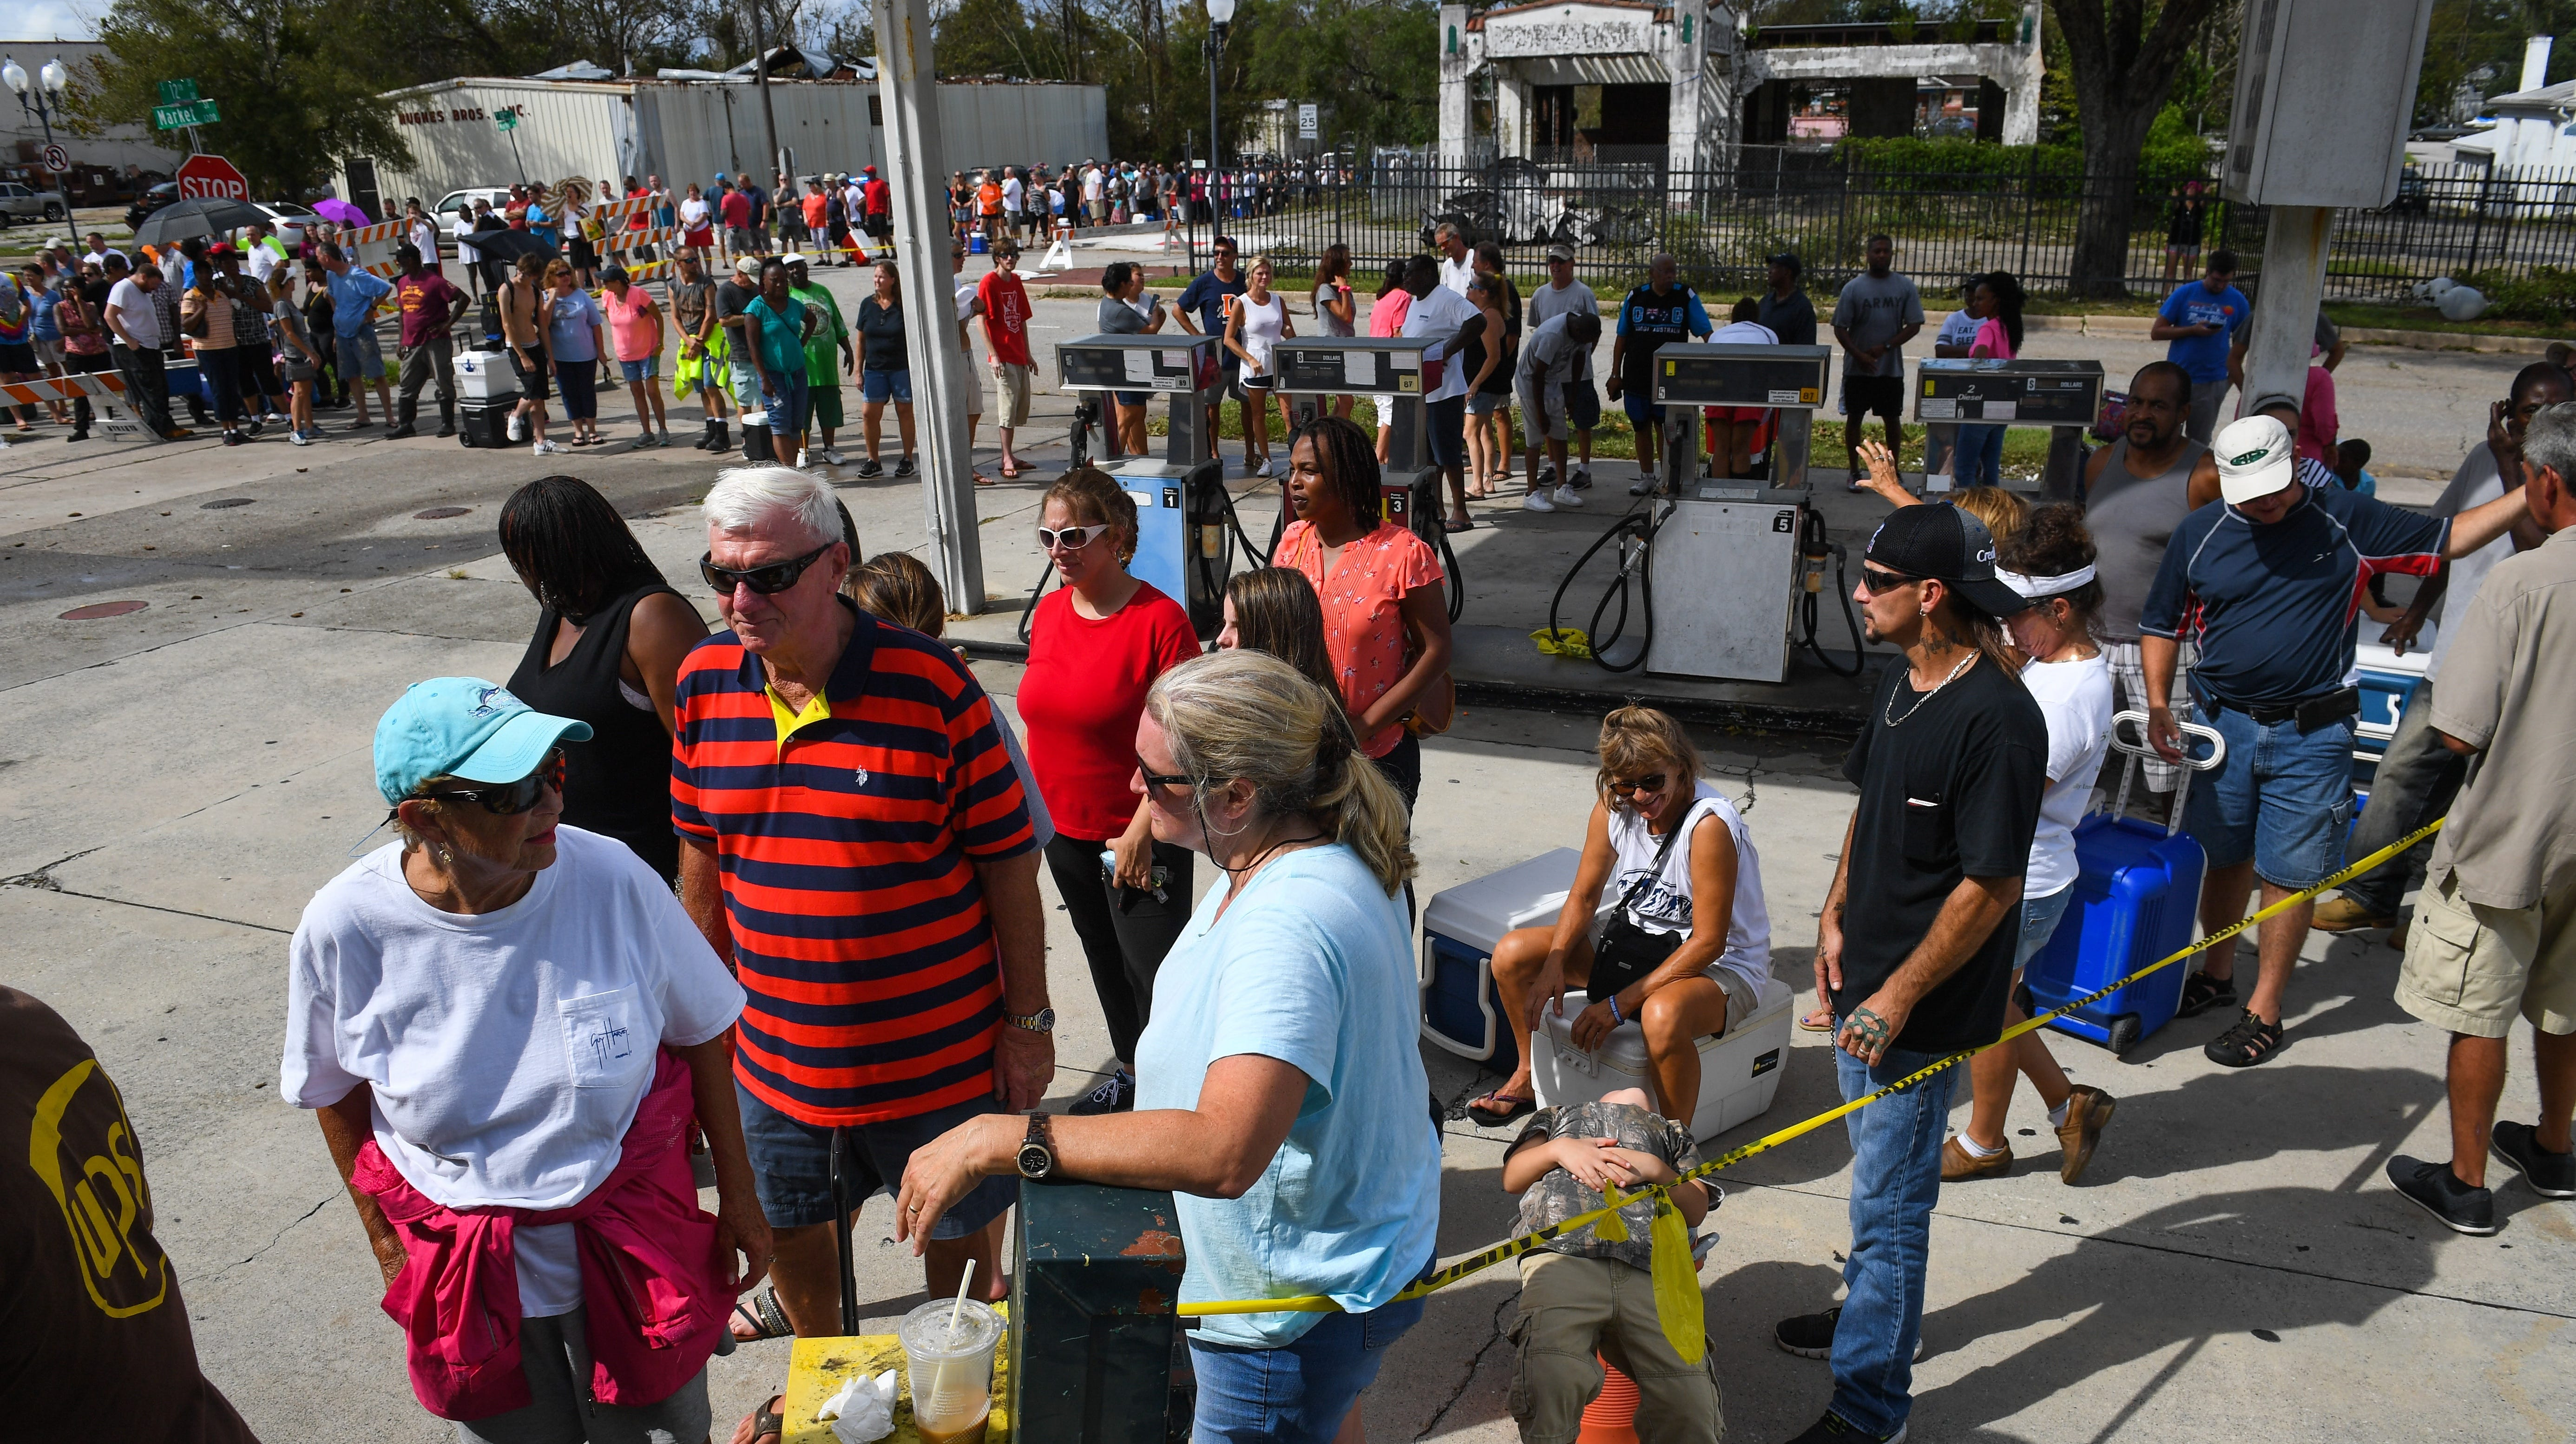 People line up to buy ice waiting to buy ice from The Rose Ice and Coal Company in Wilmington, N.C., on Sept. 17, 2018.